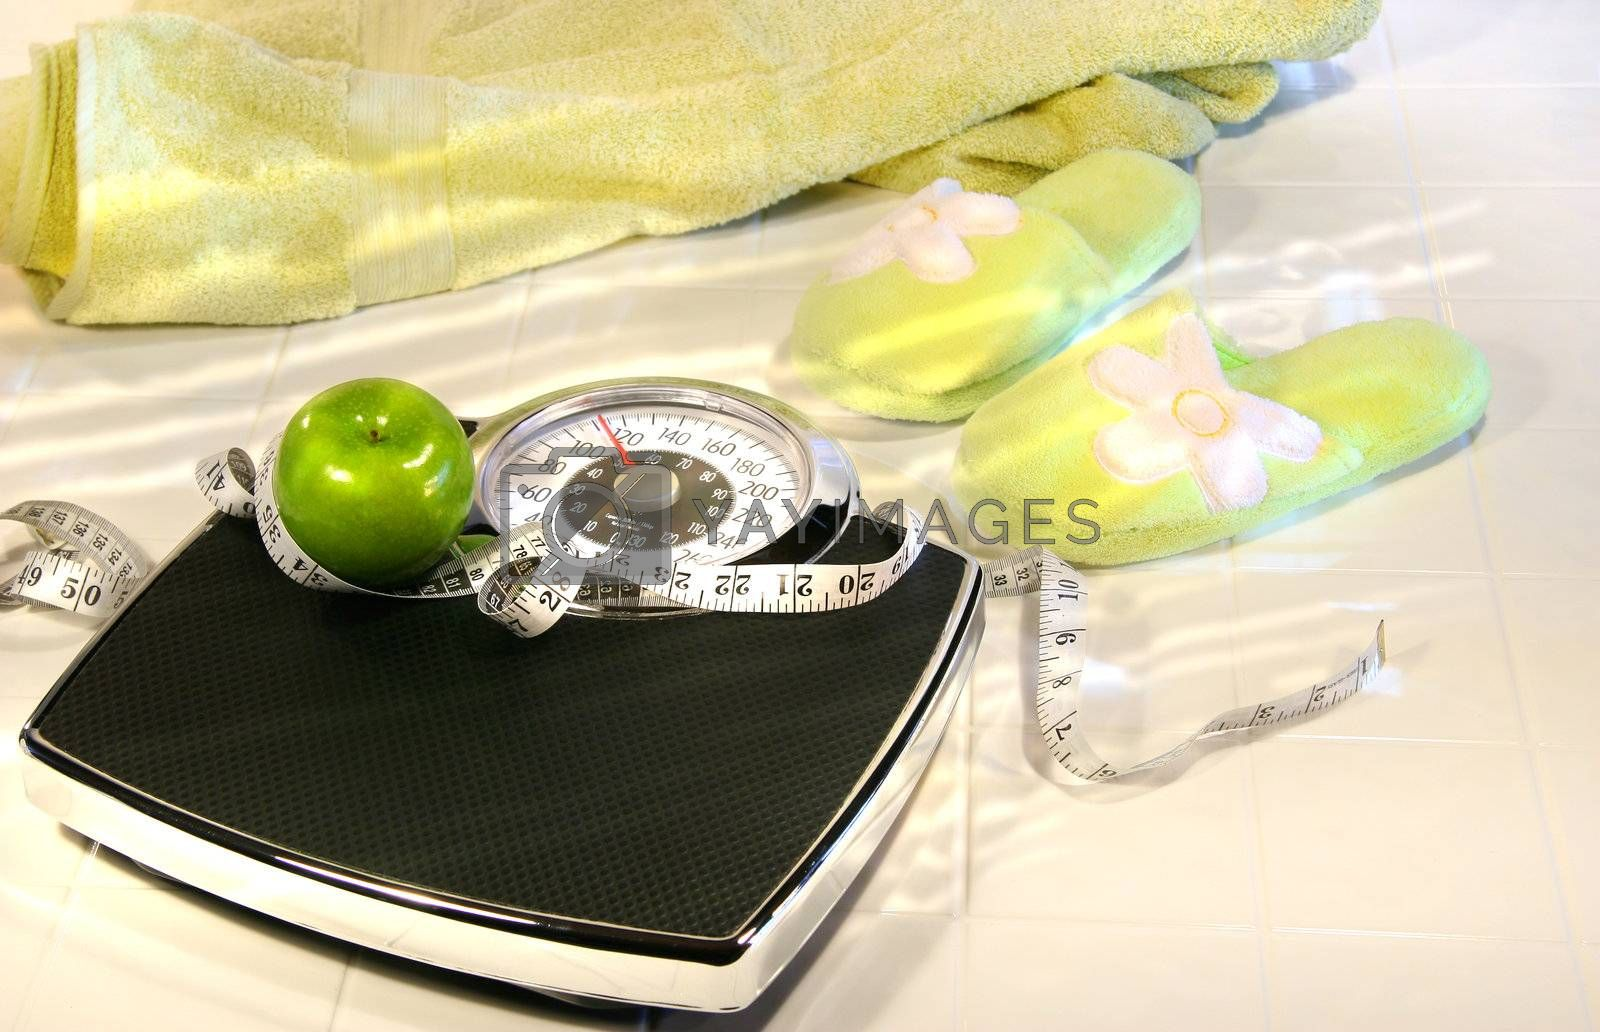 Weight scale on tile floor with towel and slippers/ Conceptual image for diet and excerise